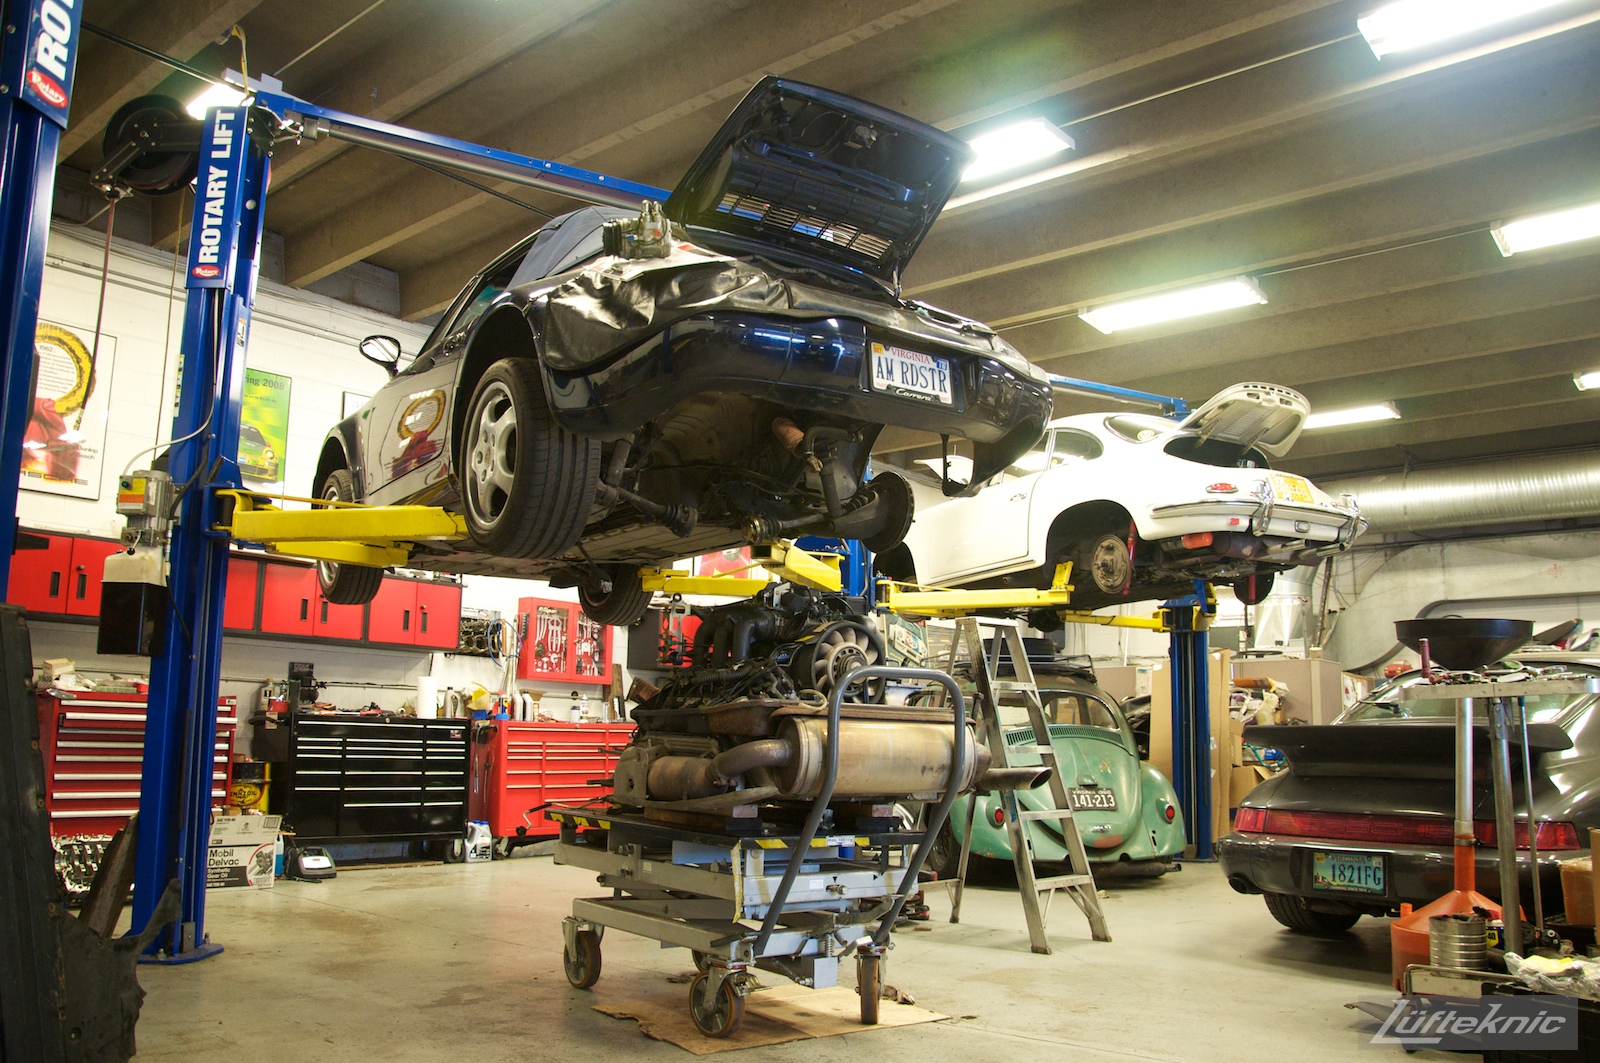 A rare 964 American Roadster inside the Lufteknic shop with the engine and transmission being removed.